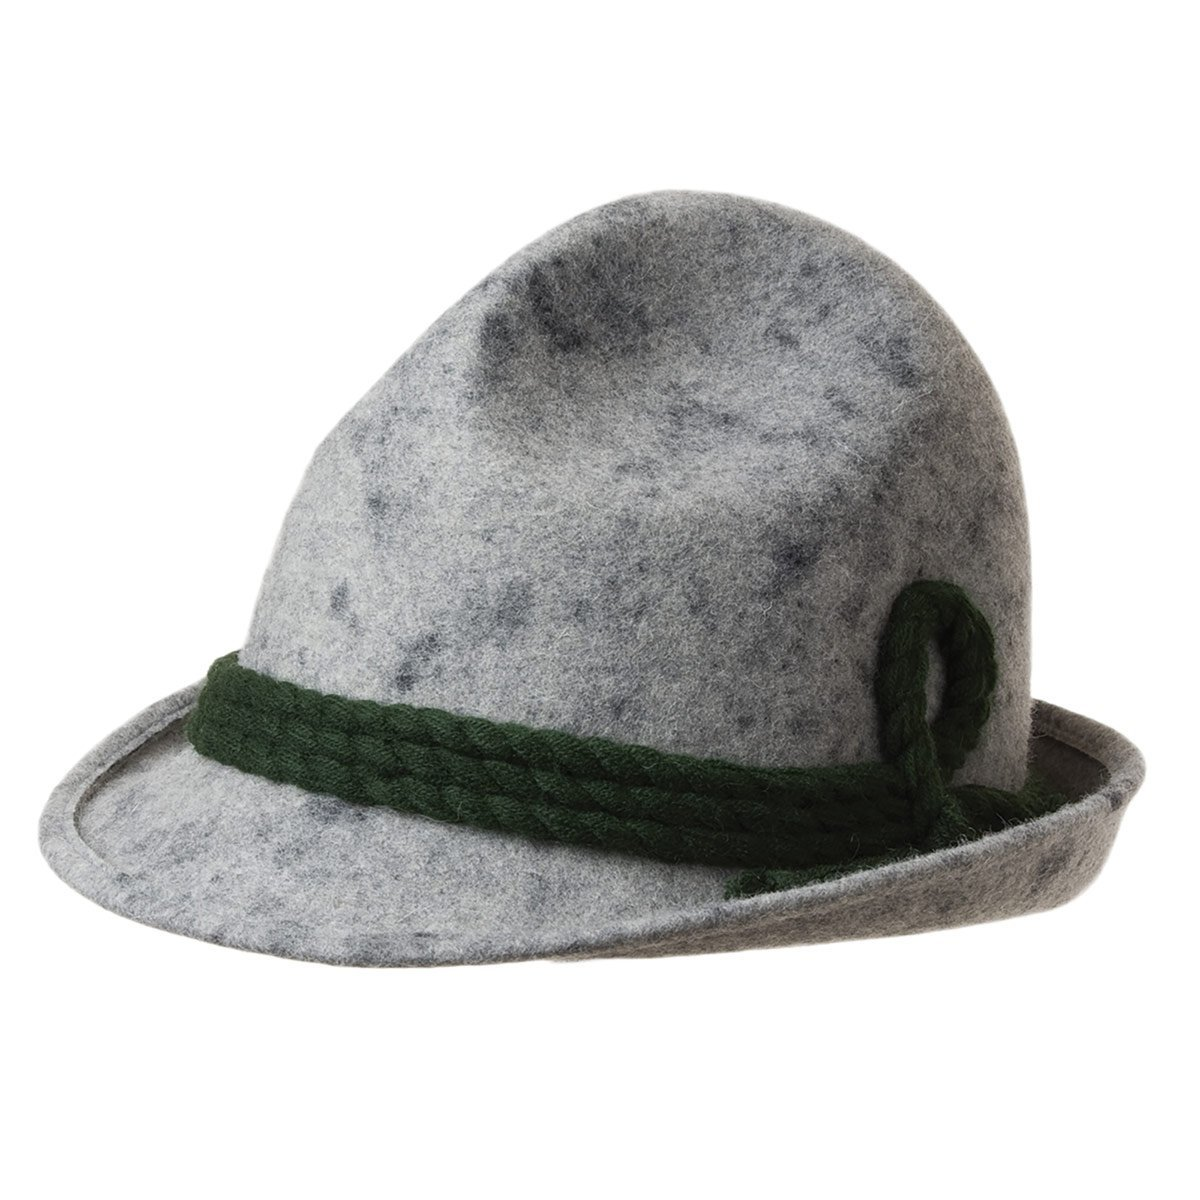 Hunting hat in wool felt with cords by Hutter a1d52e79003